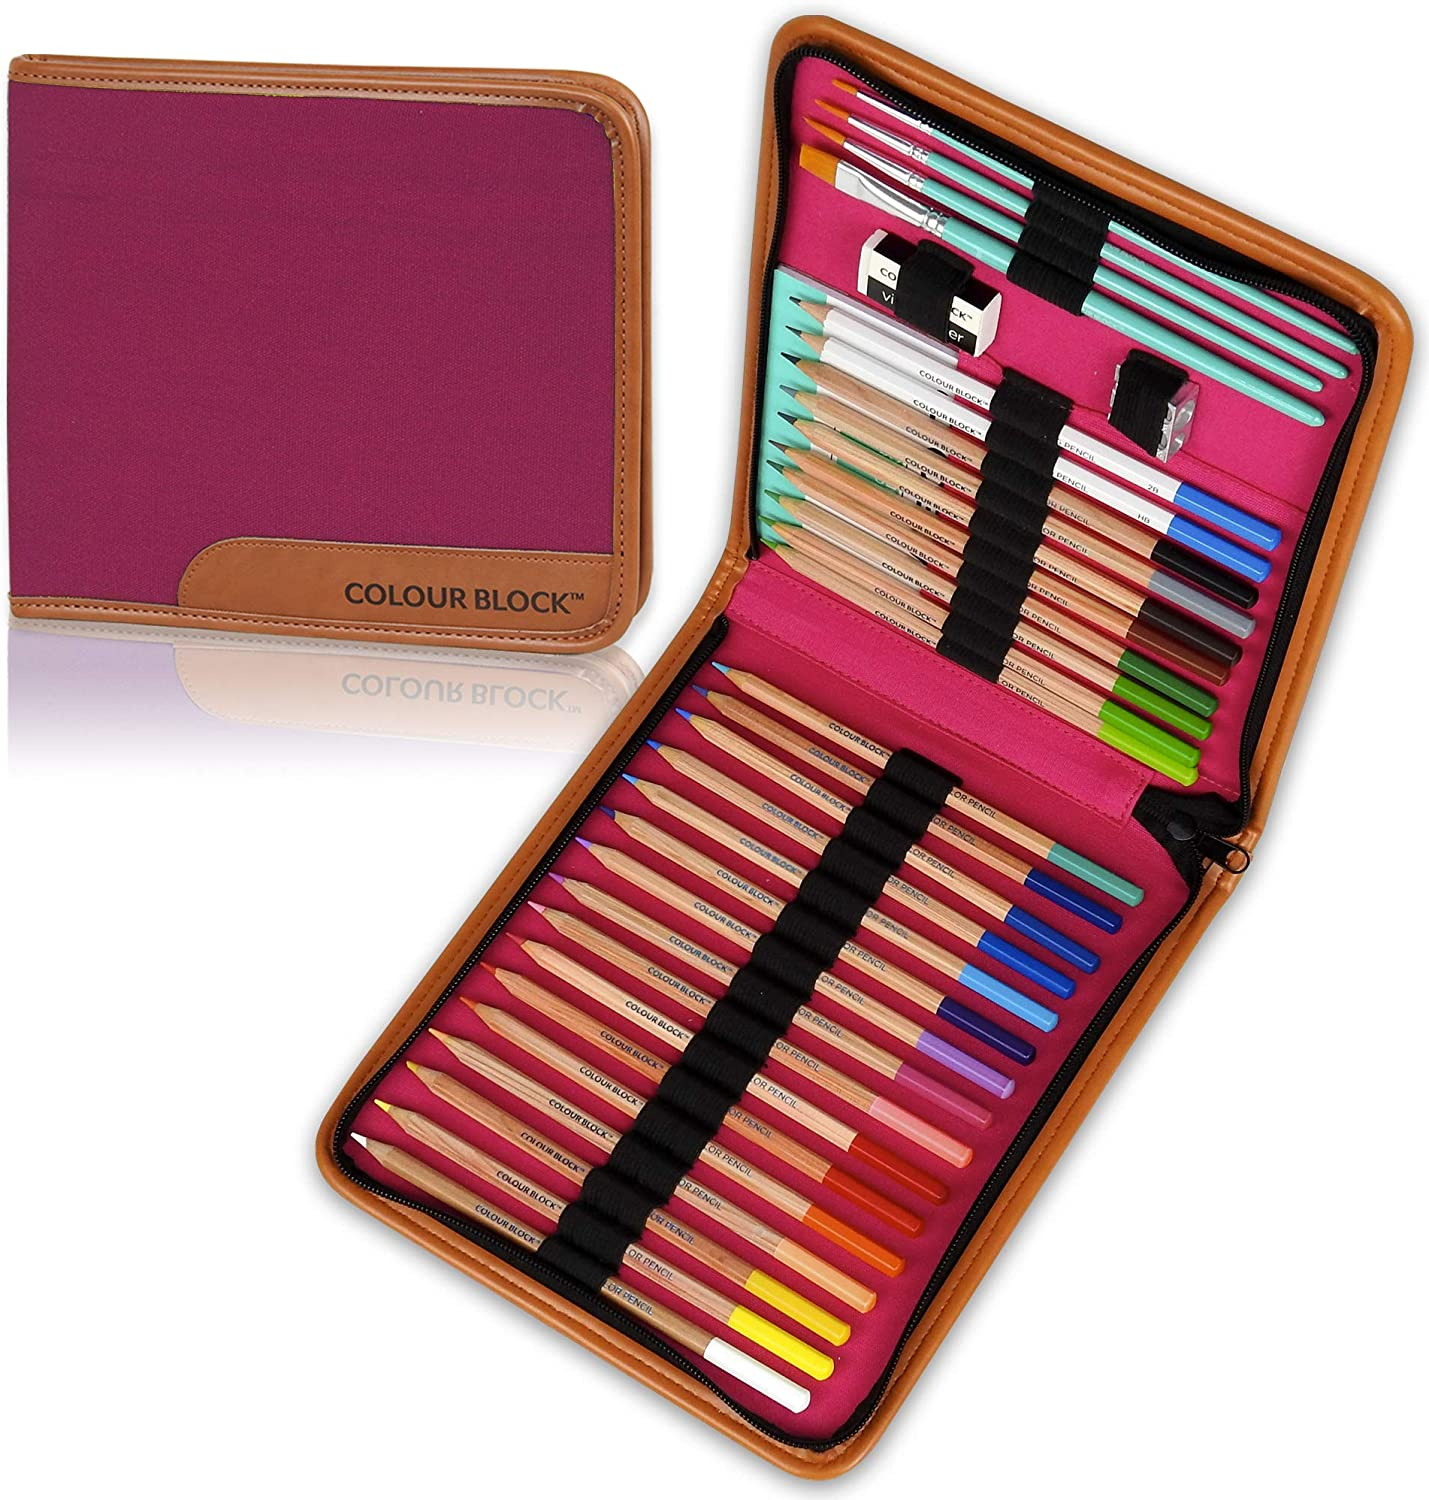 COLOUR BLOCK 34PC Watercolor Pencil Travel Art Set For Kids, Teens and Adults. For Drawing, Sketching, Coloring and Painting. Great starter kit for all beginners to professionals.: Office Products